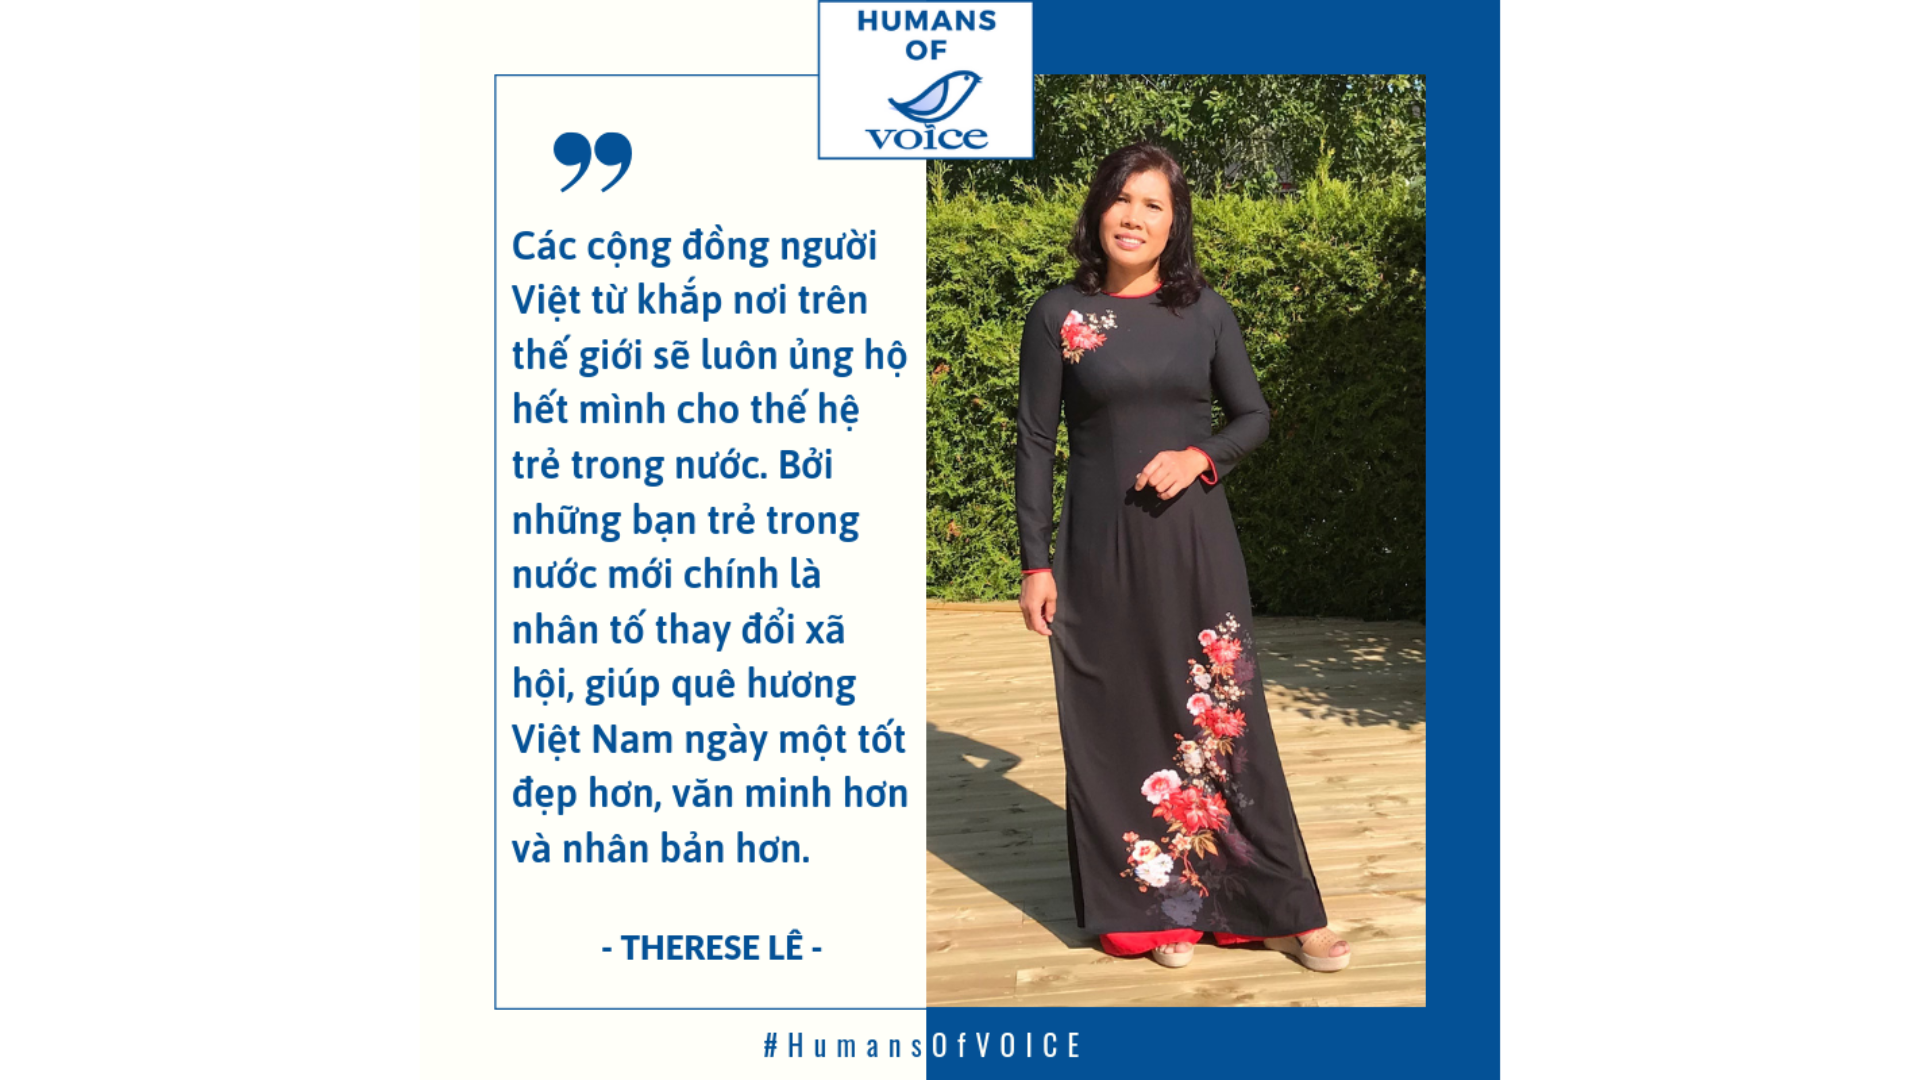 Humans of VOICE: Therese Lê